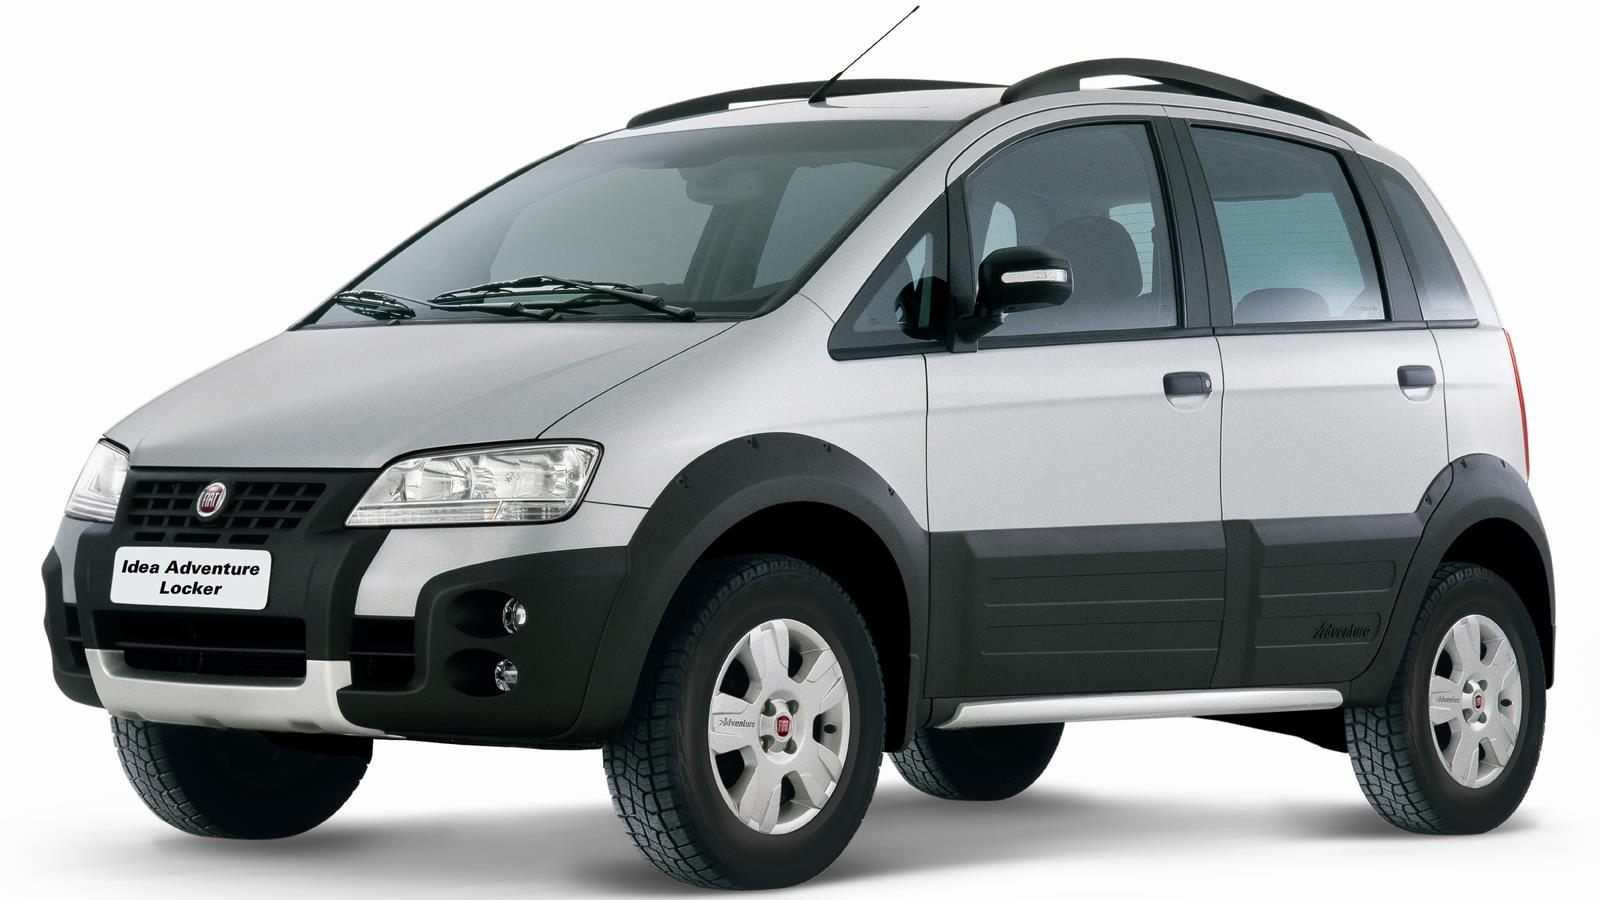 Fiat idea adventure todo un mundo de sensaciones for Precio de fiat idea adventure 2015